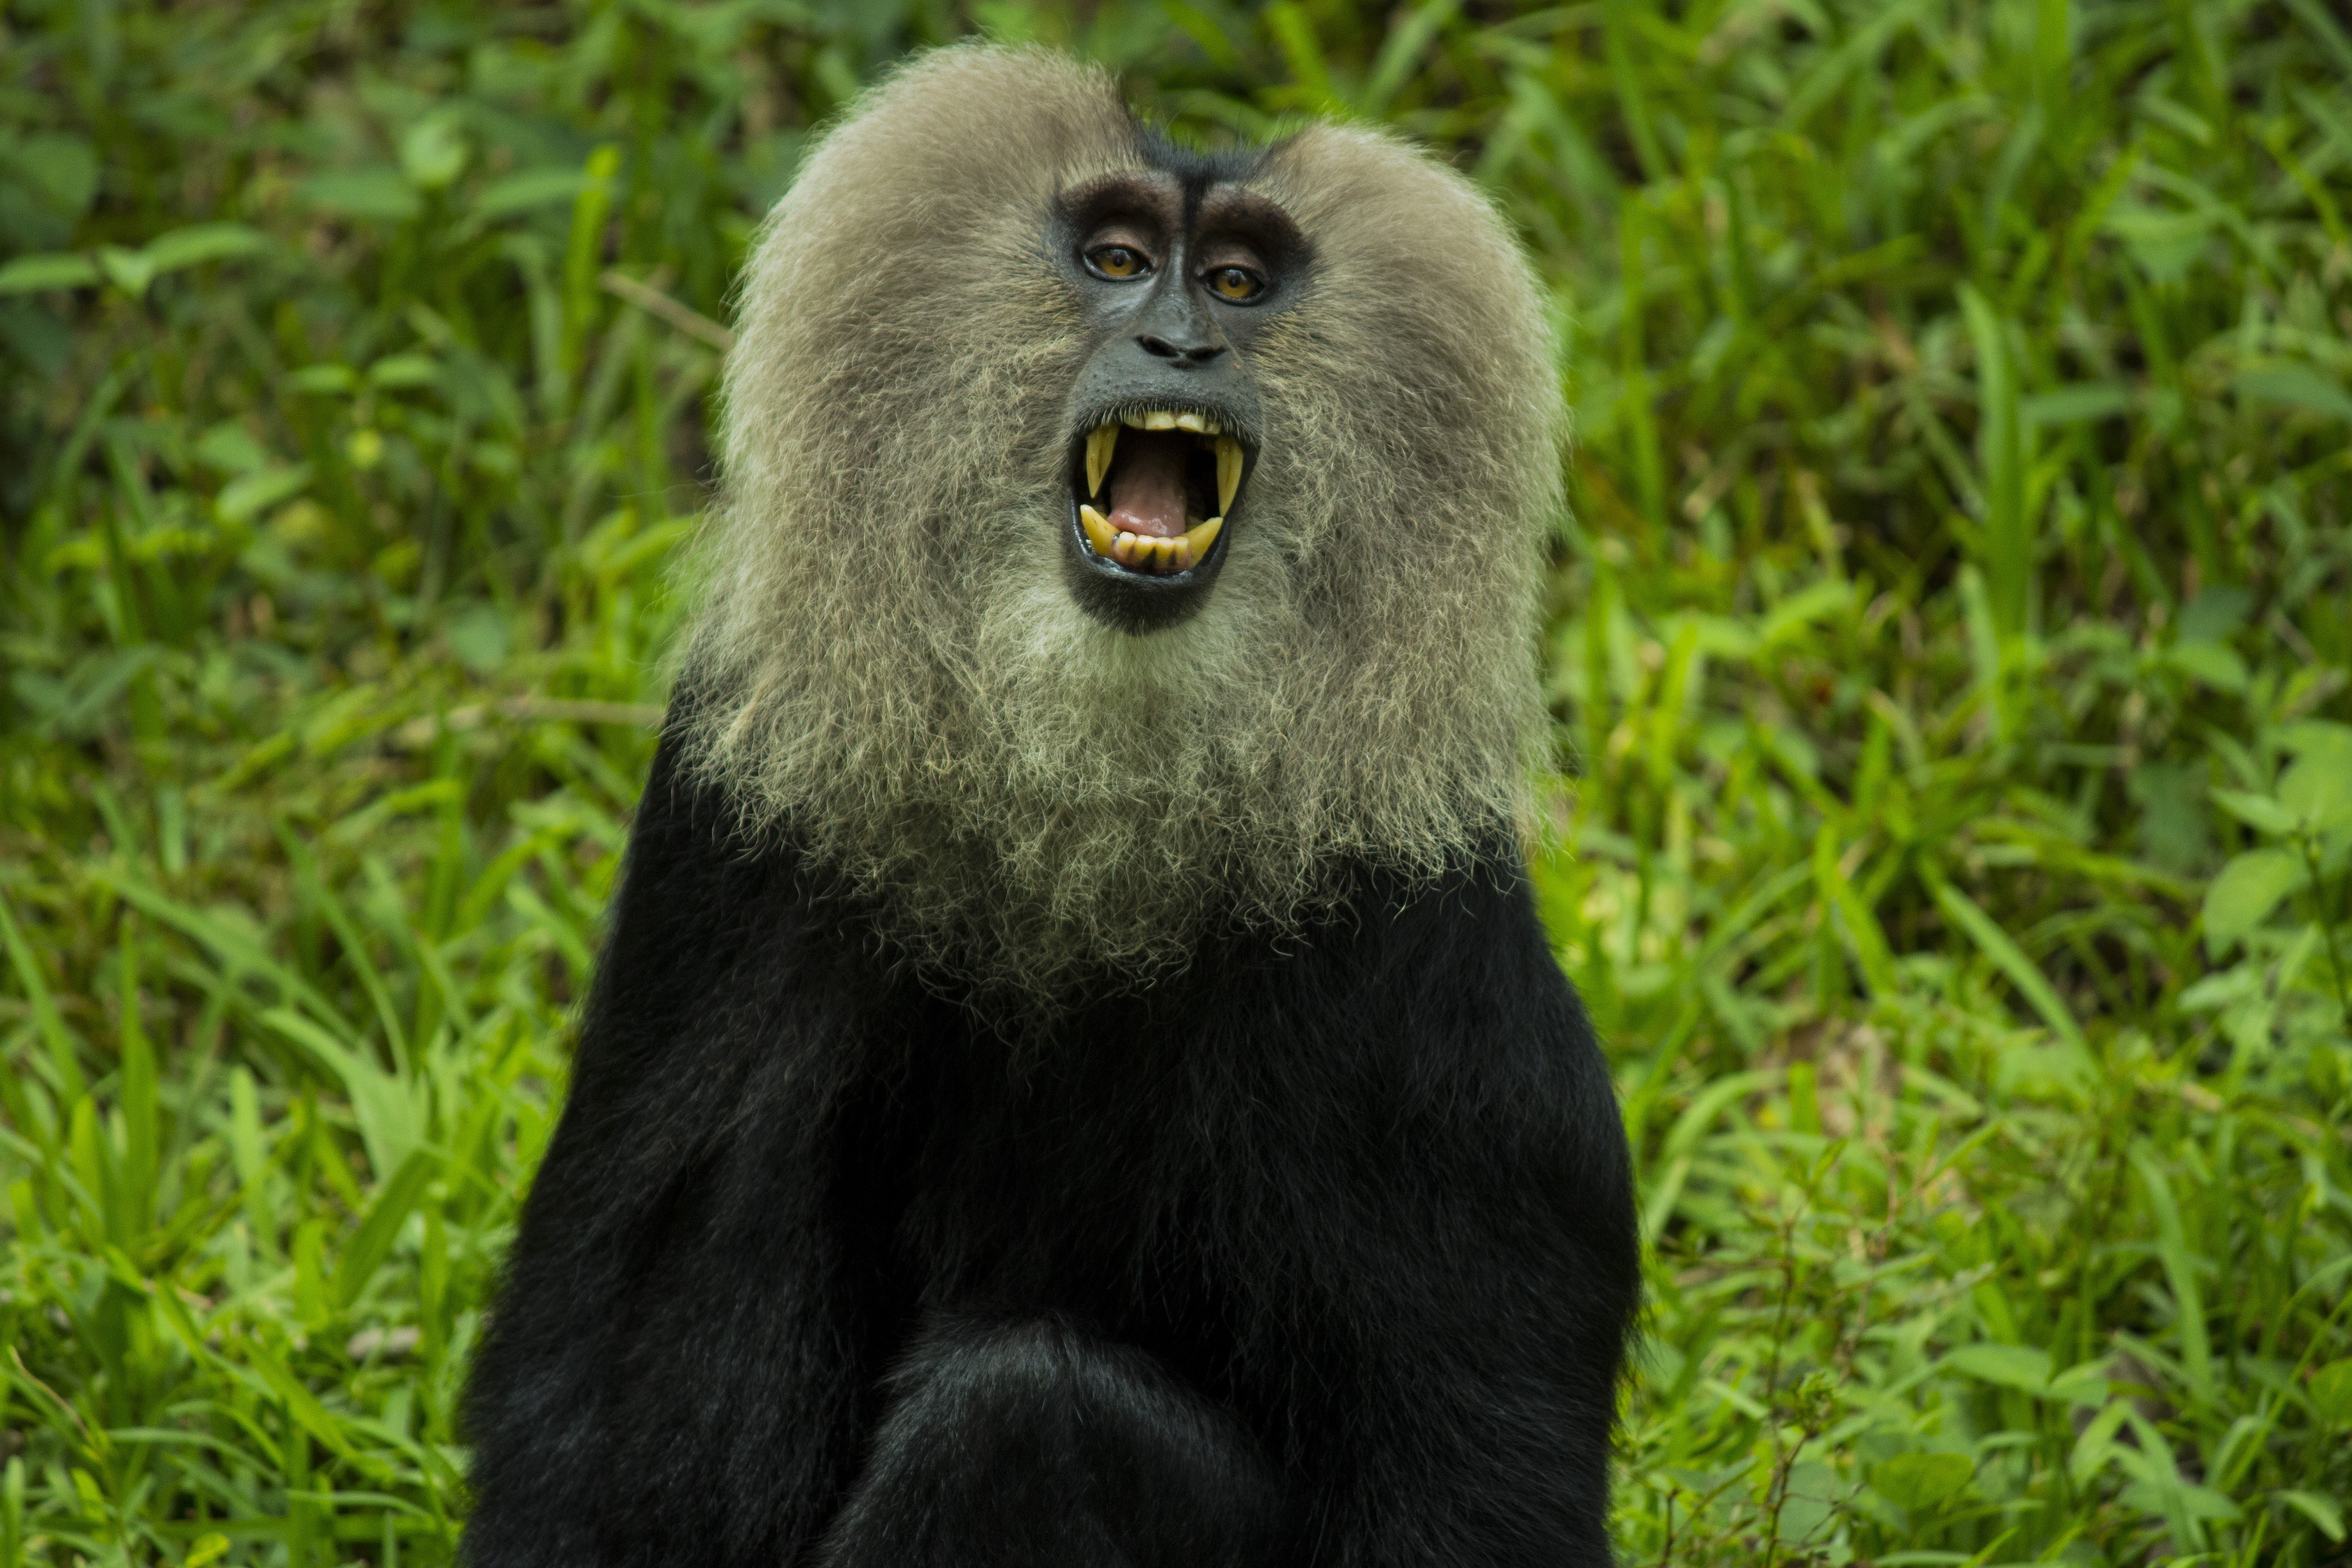 gray and black monkey showing mouth